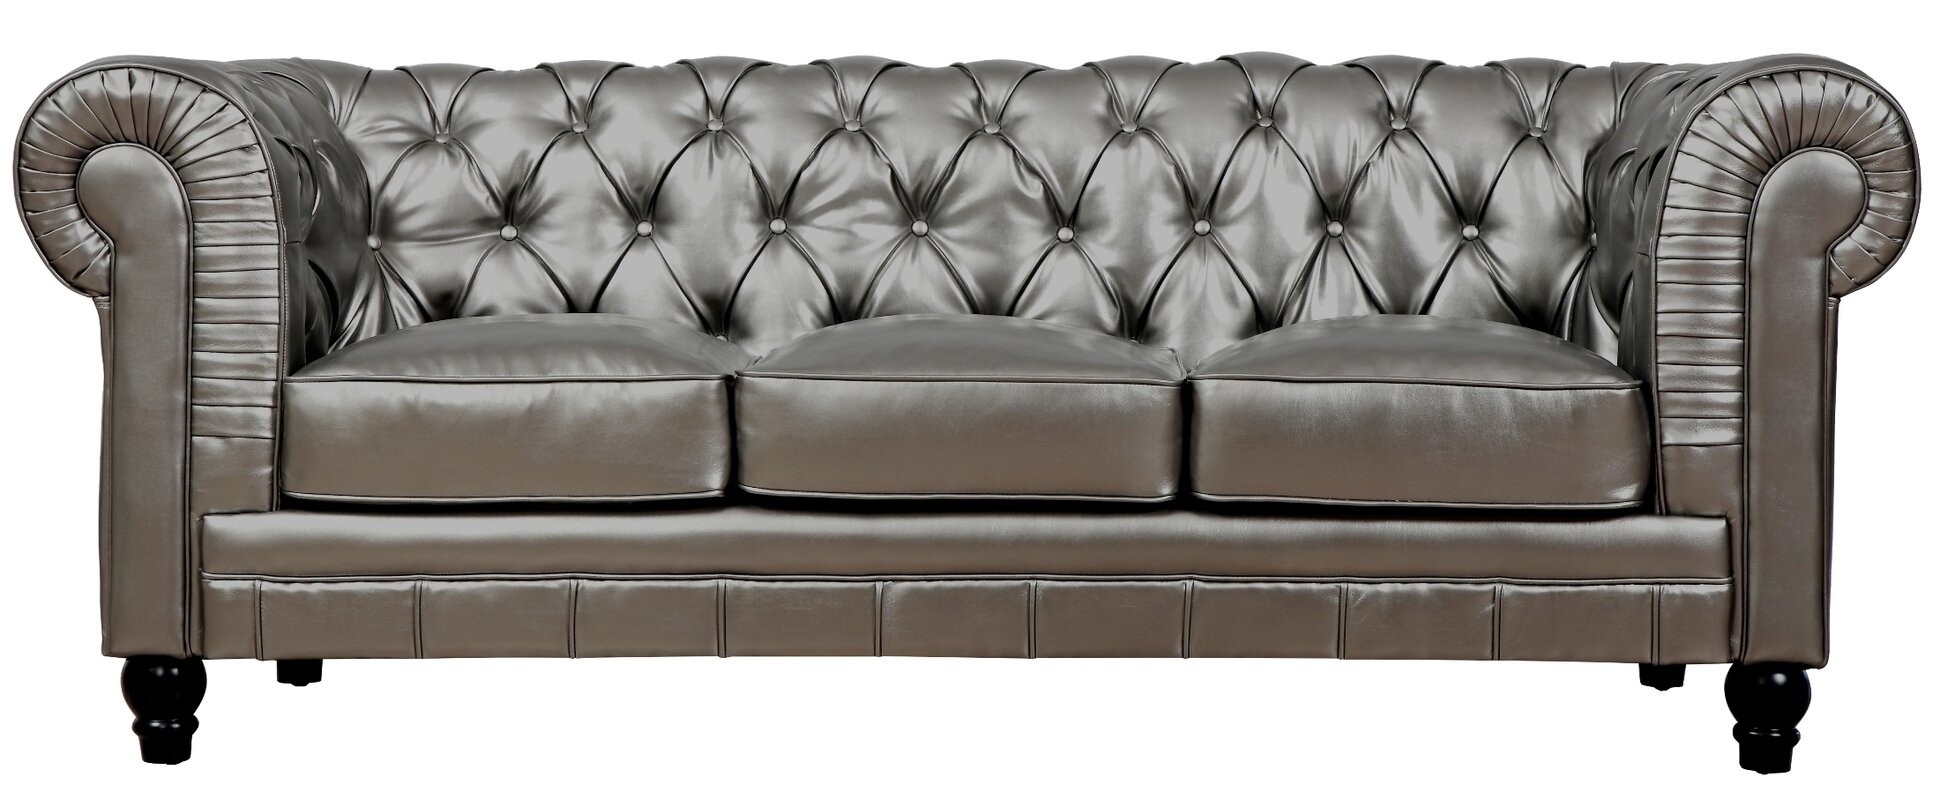 Design Chesterfield Couch mason 83 leather chesterfield sofa reviews joss main sofa